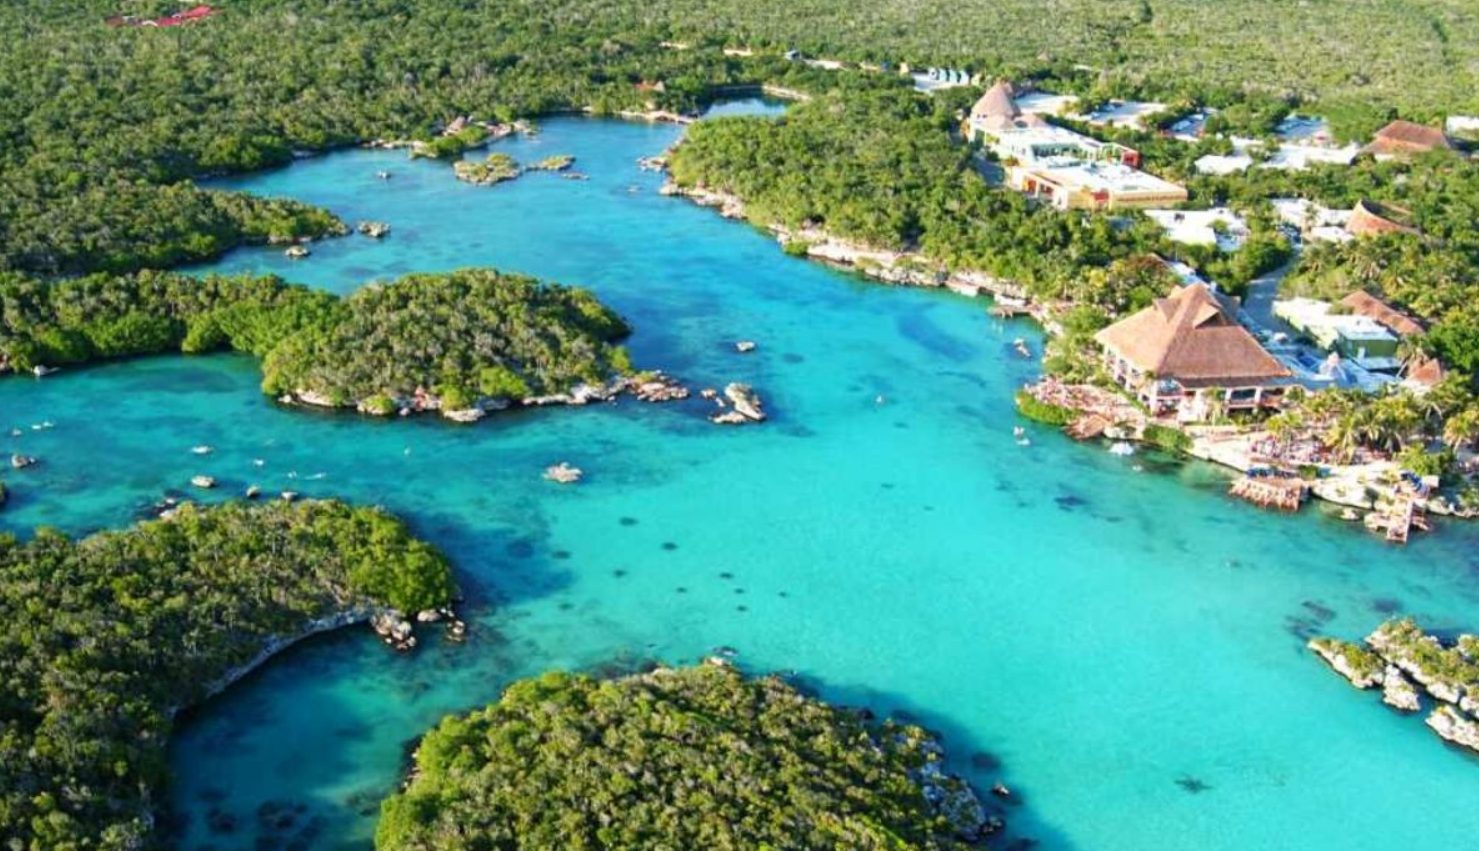 Xel Ha vs Xcaret vs Xplor